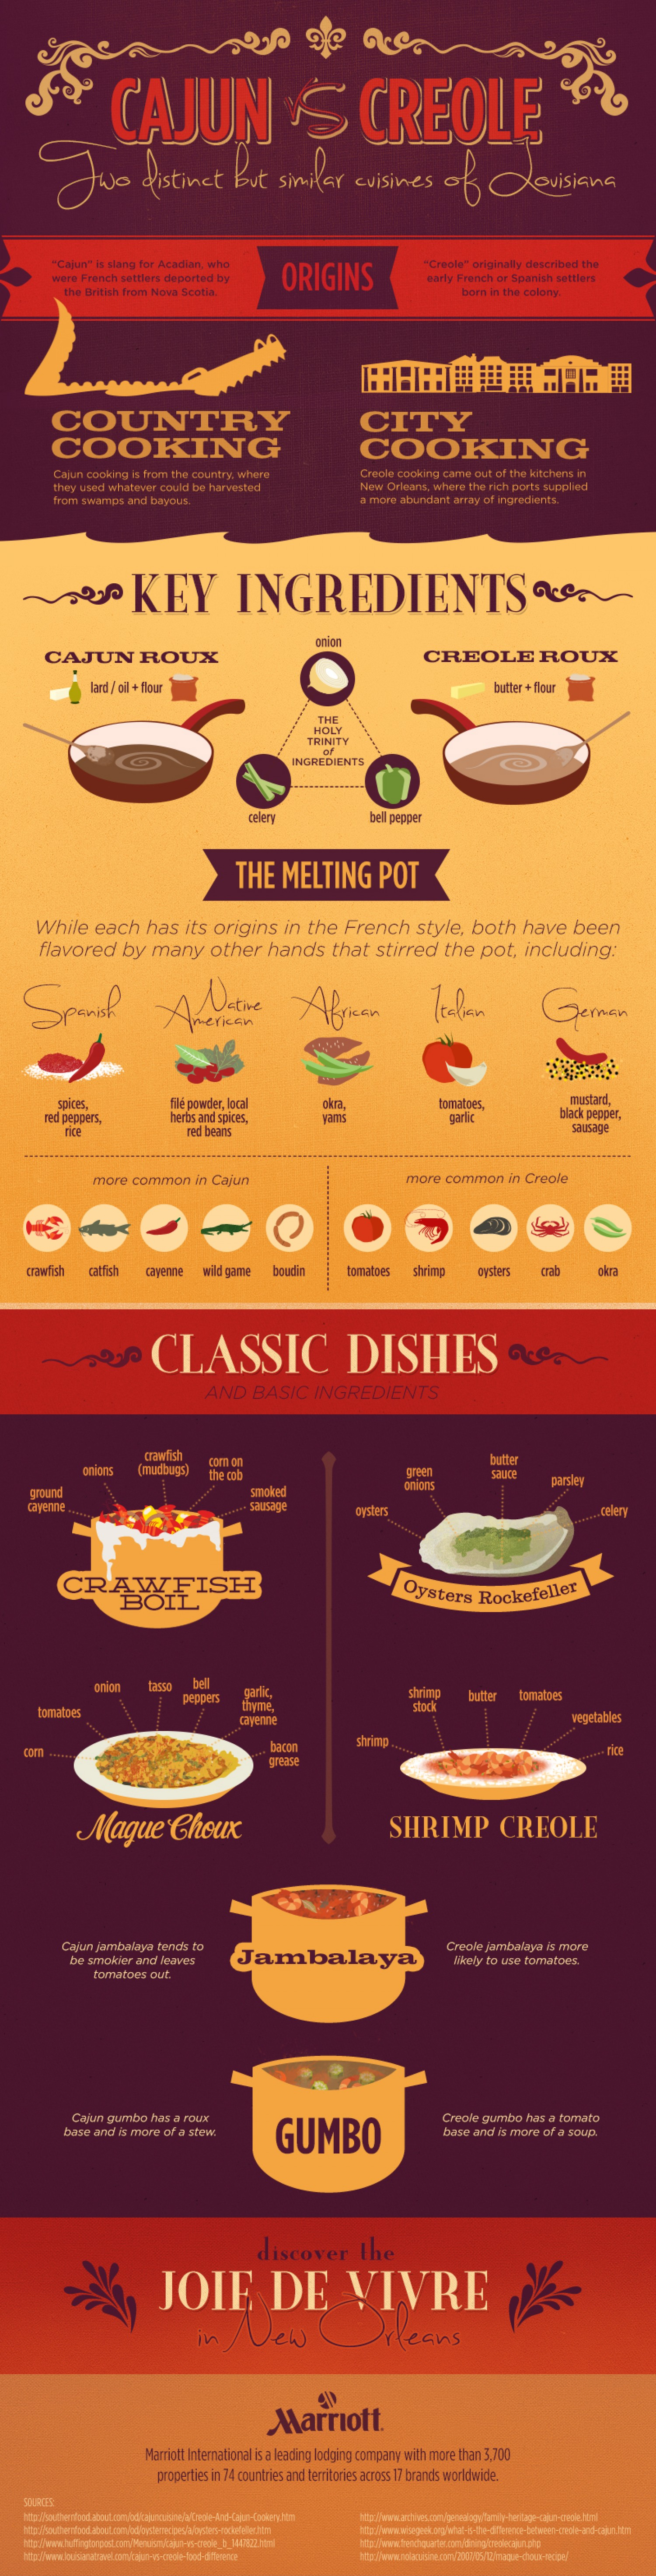 new-orleans-cuisine-cajun-vs-creole-food-infographic_52939ac966964_w1500